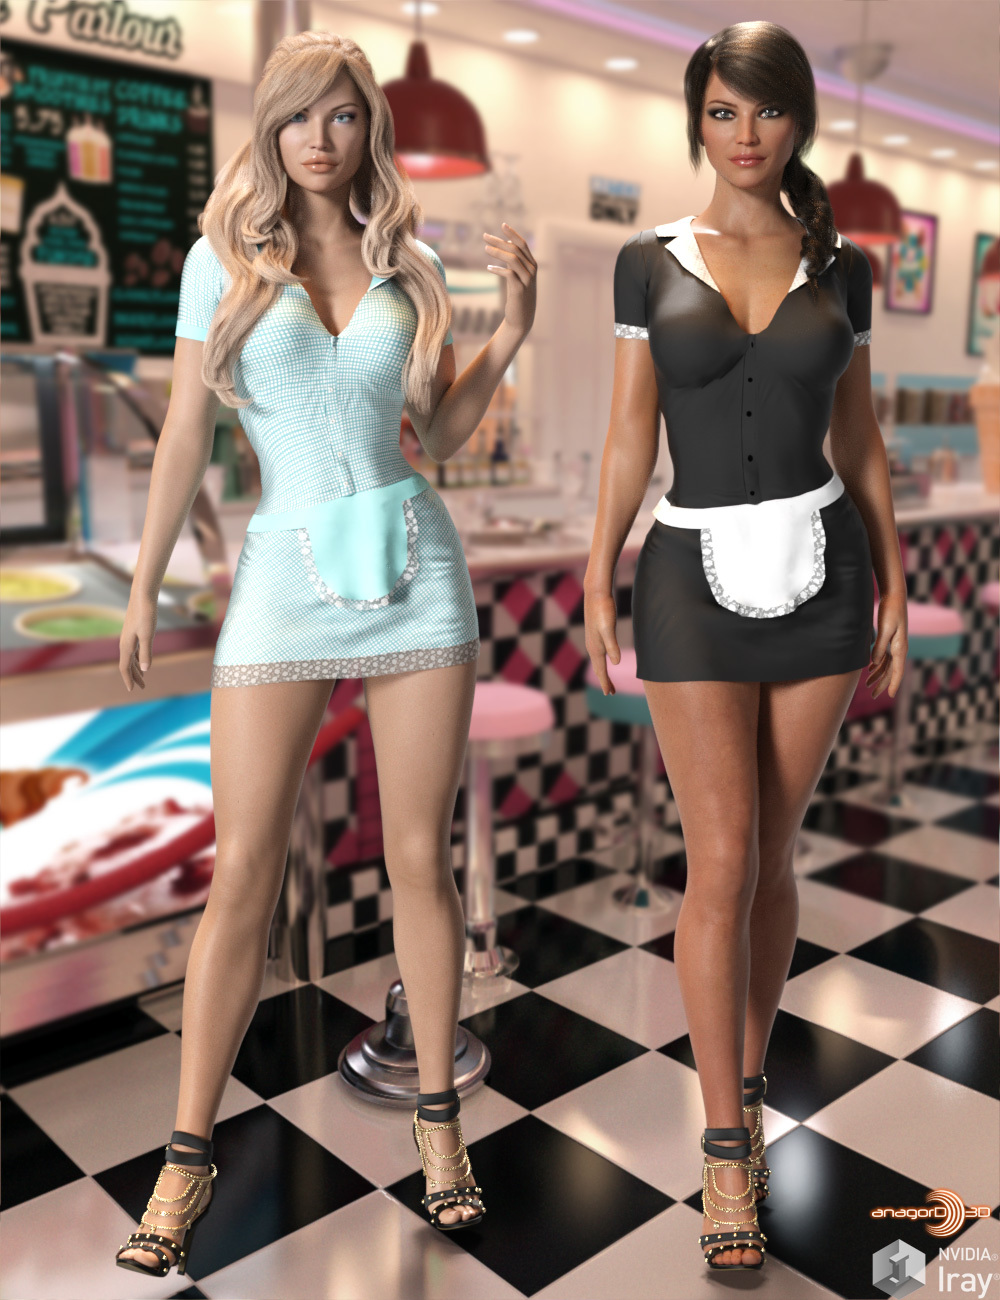 Milkshake Girls - Head and Body Morphs for G8F by Anagord